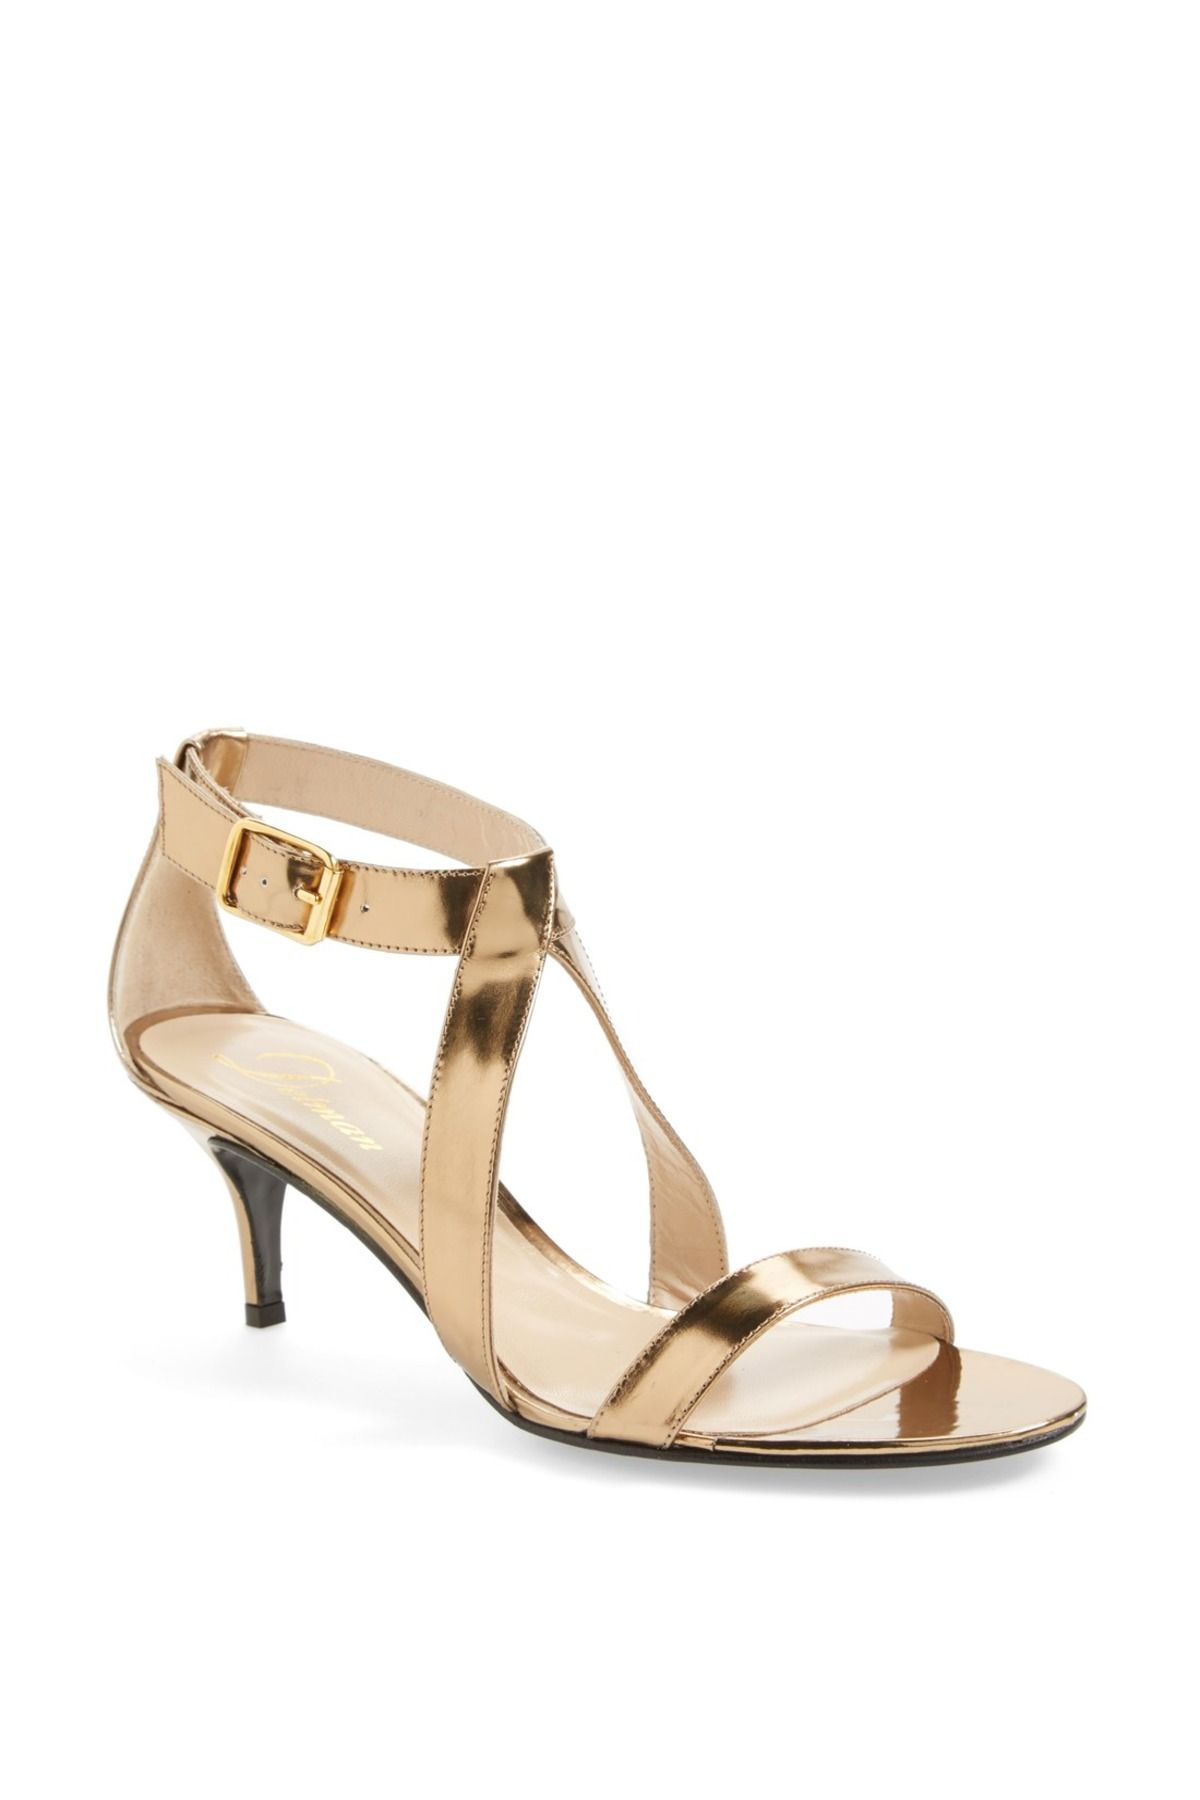 'Tori' Sandal by Delman on nordstrom_rack (With images